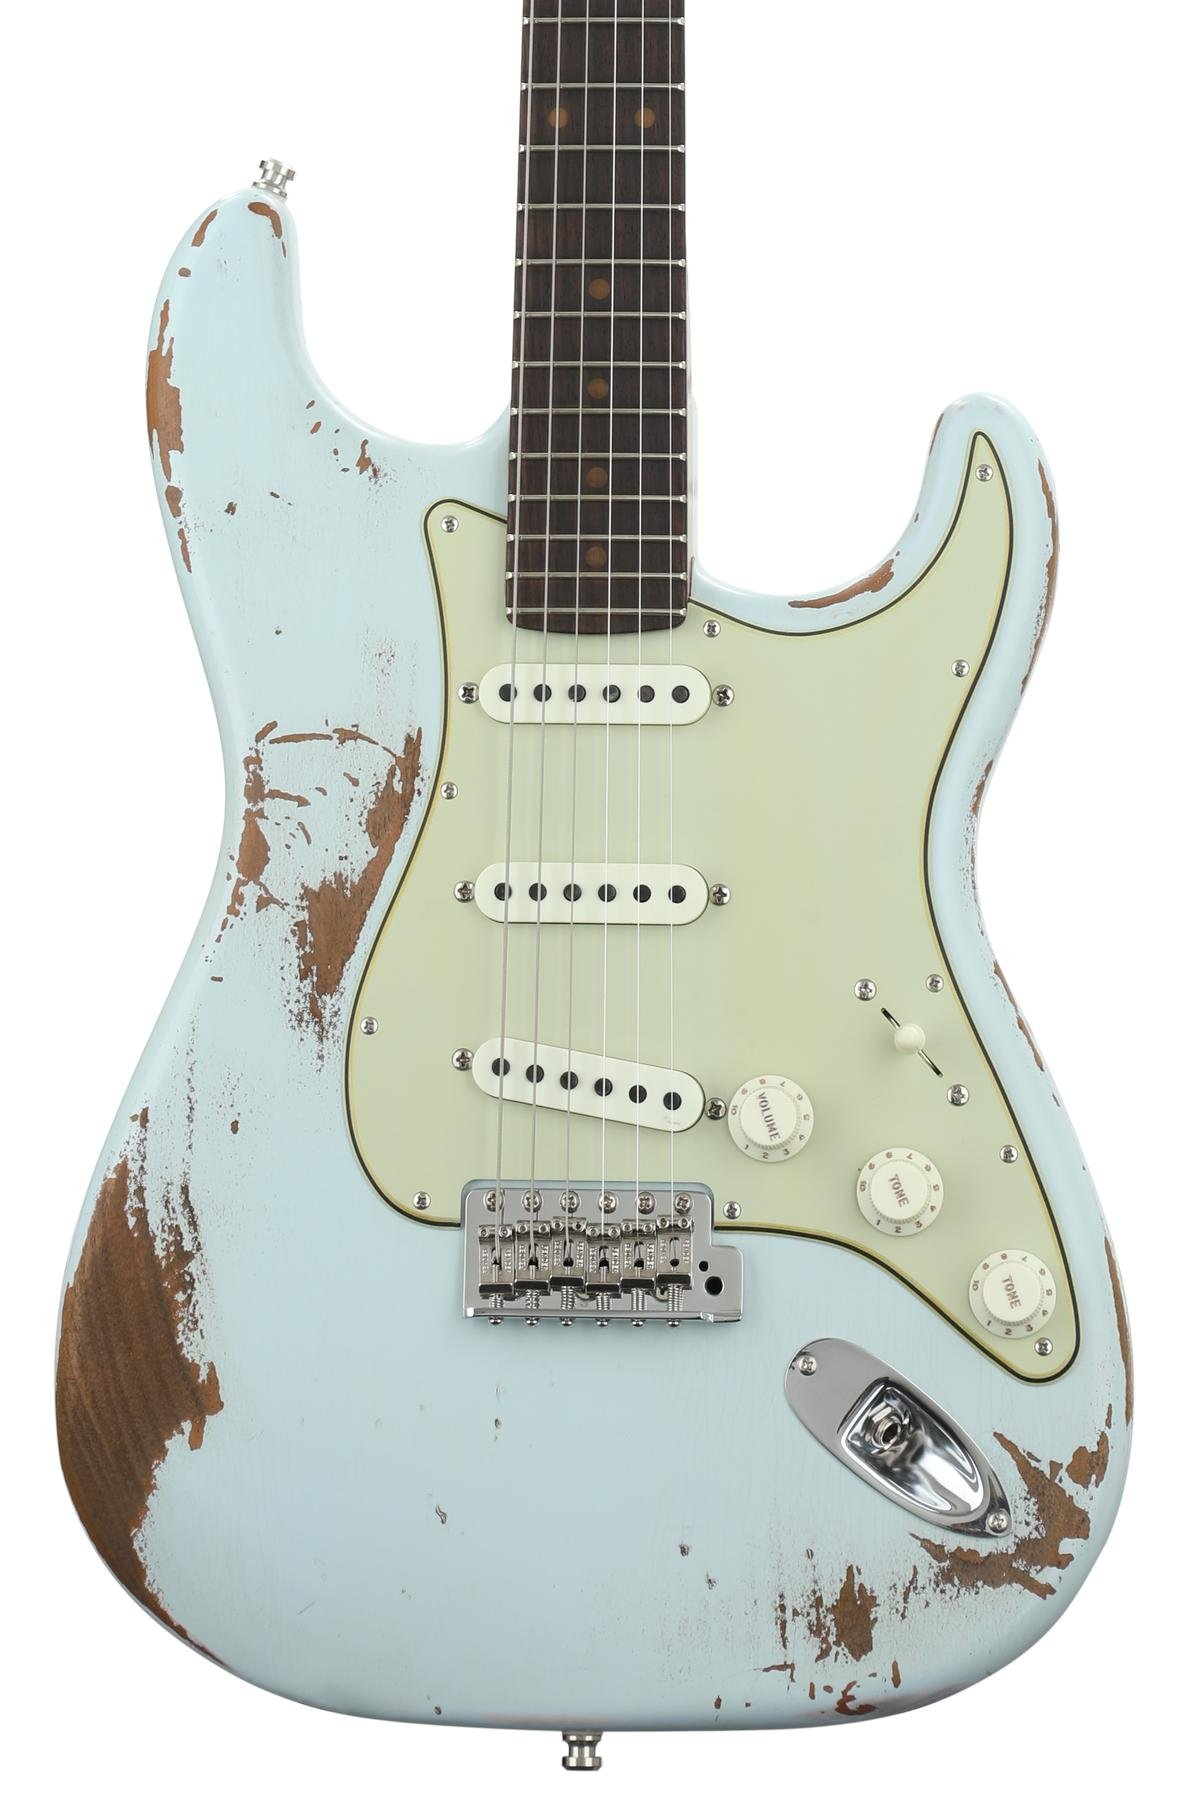 Fender Custom Shop Gt11 Stratocaster Heavy Relic Sweetwater Guitar Kit Builder Understanding The 5way Switch Exclusive Aged Sonic Blue Image 1